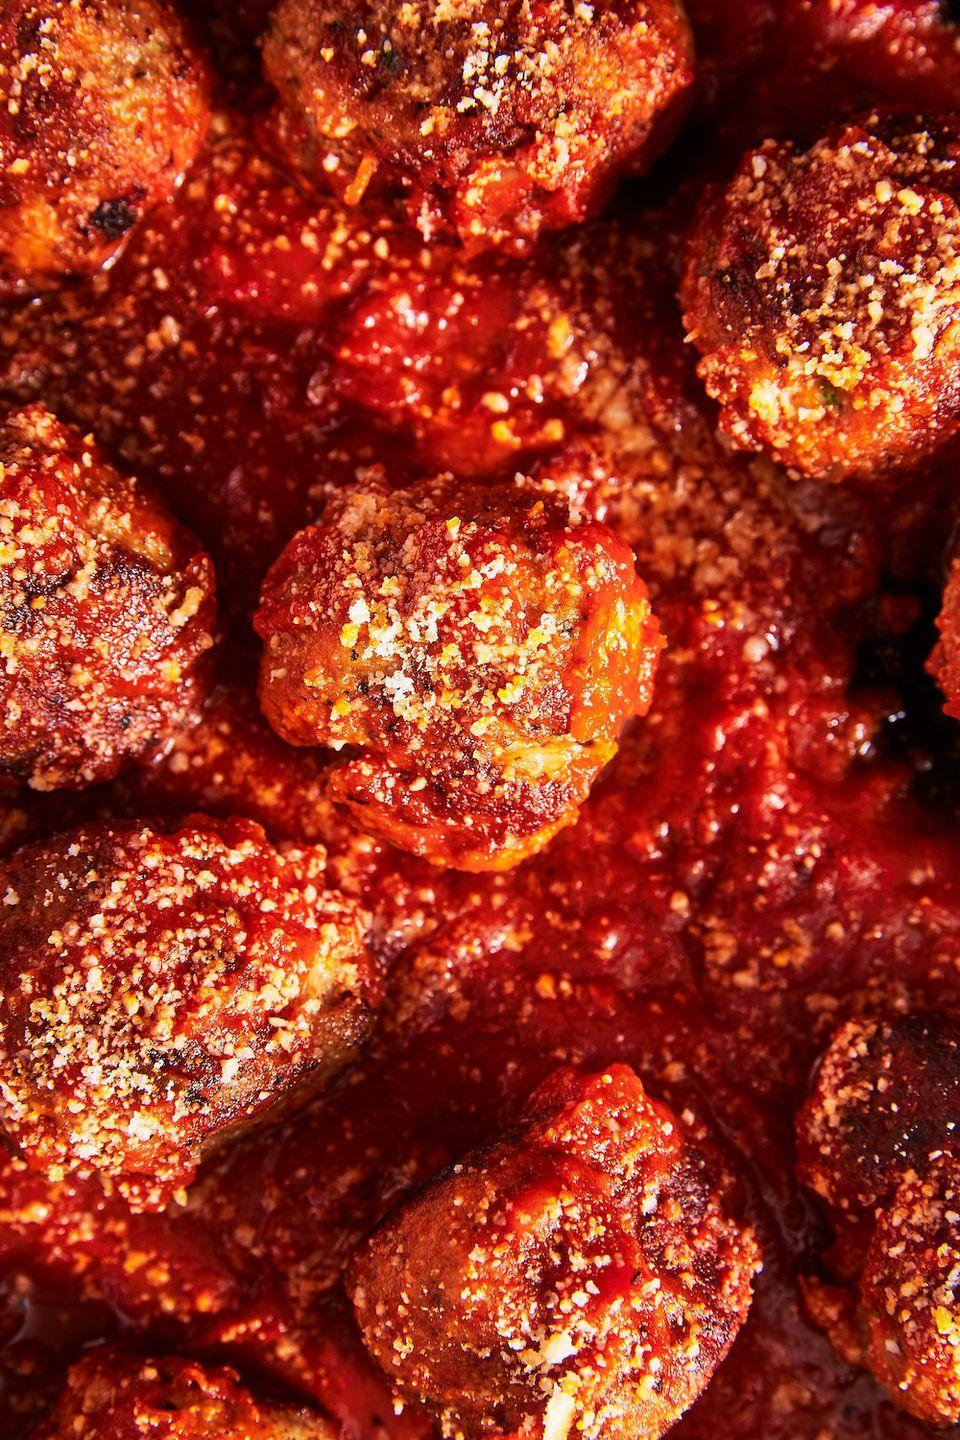 """<p>So good you'll be dreaming about them. </p><p>Get the recipe from <a href=""""https://www.delish.com/cooking/recipe-ideas/a25621572/italian-meatball-recipe/"""" rel=""""nofollow noopener"""" target=""""_blank"""" data-ylk=""""slk:Delish"""" class=""""link rapid-noclick-resp"""">Delish</a>. </p>"""